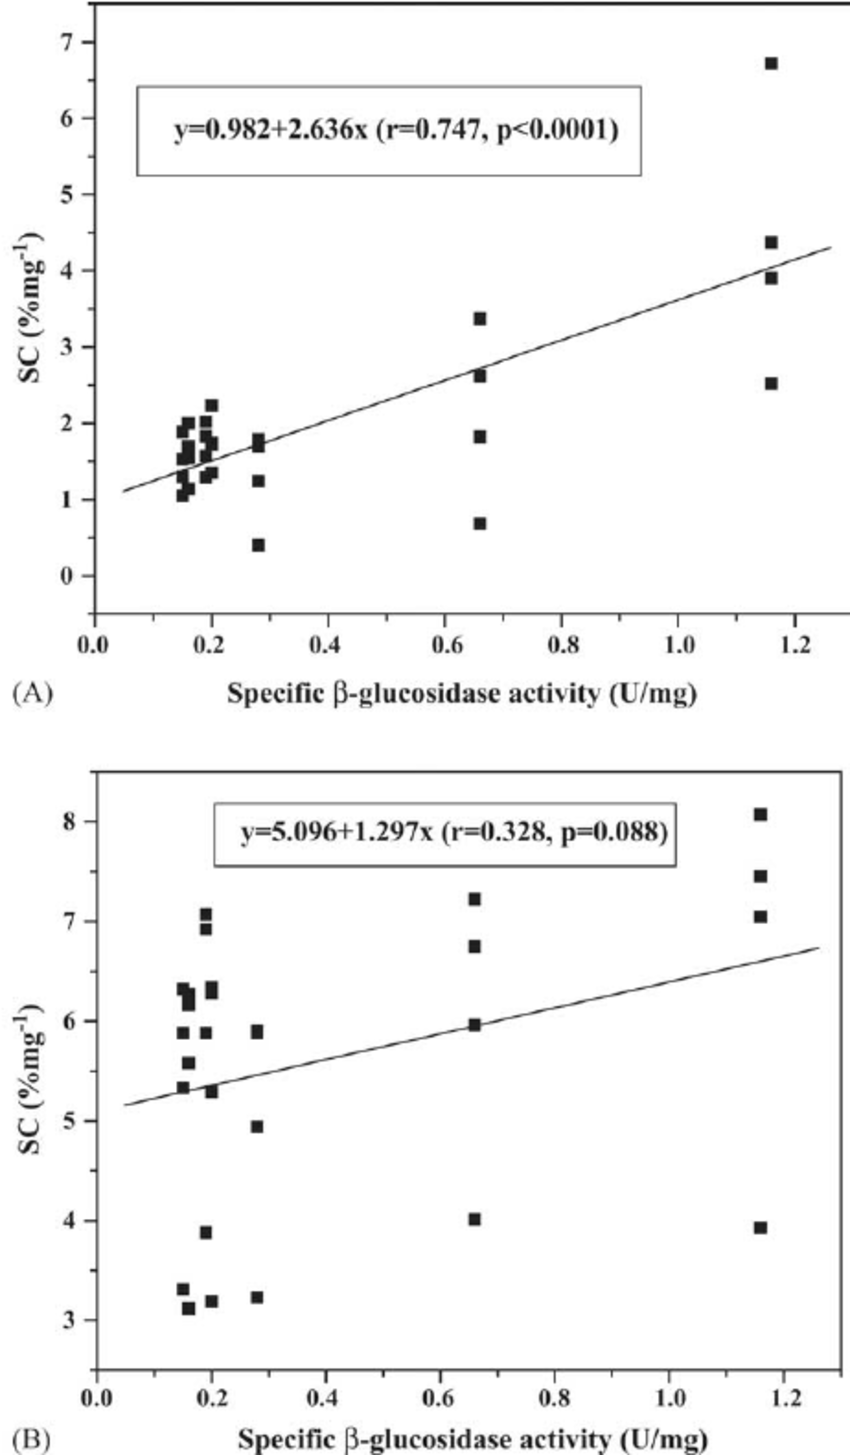 hight resolution of regression analyses of sc for hydrolysis of softwood samples vs specific glucosidase activity